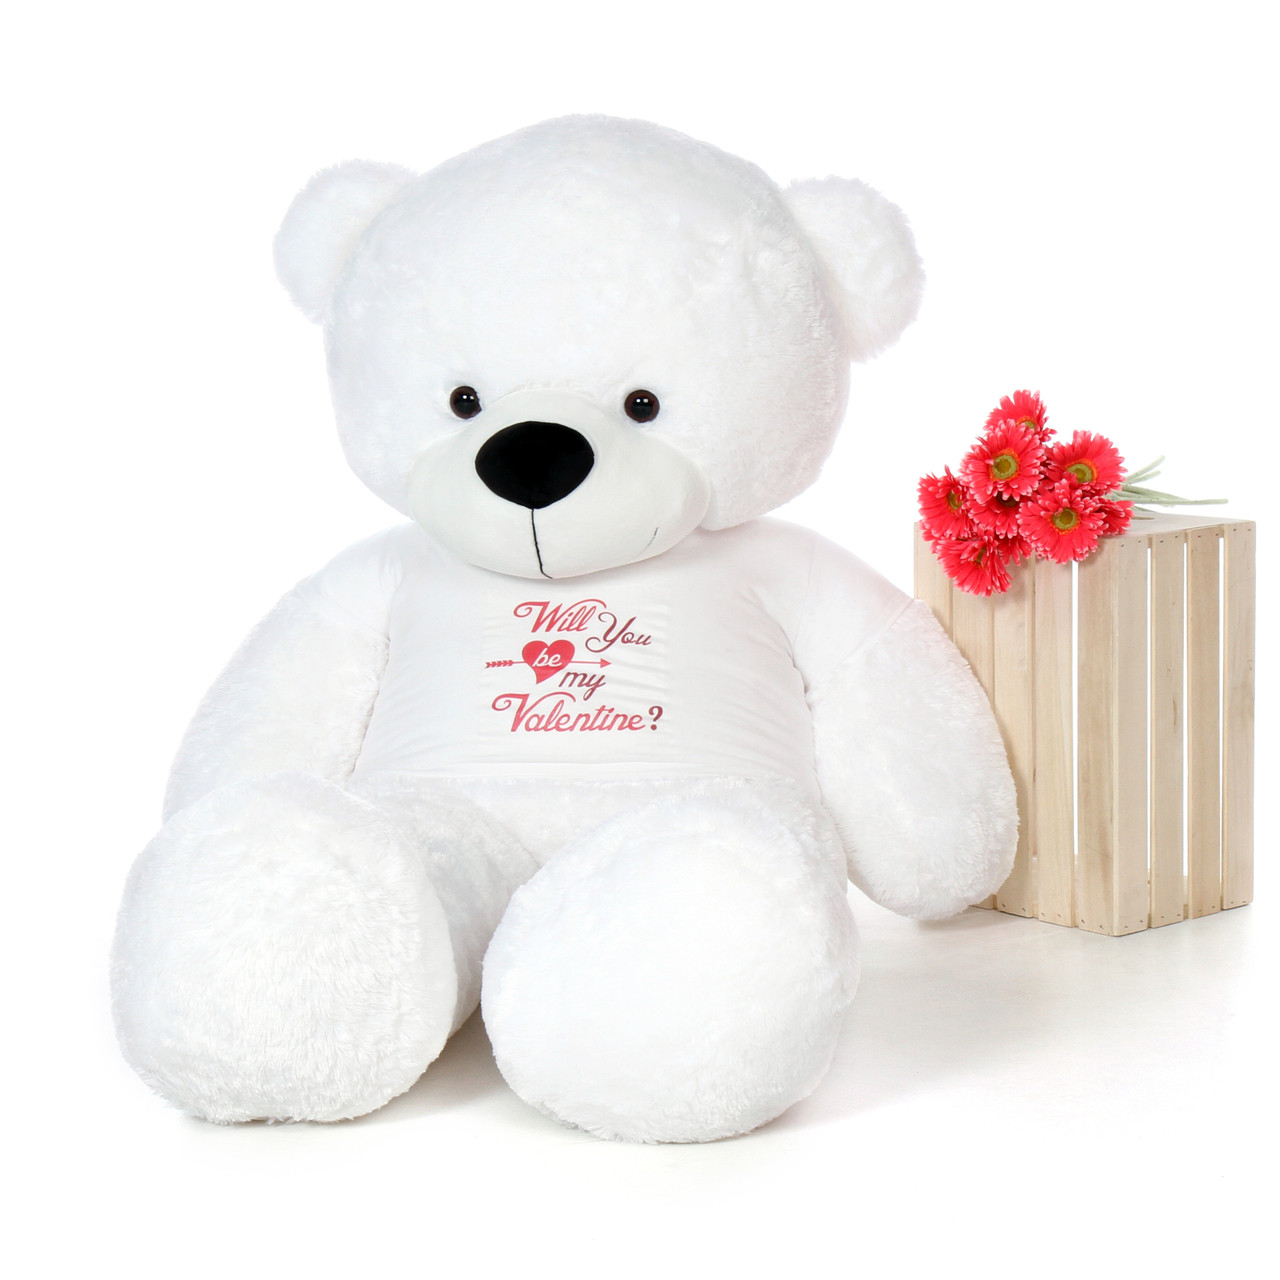 6ft Giant White Teddy Bear Coco Cuddles for Valentine's Day